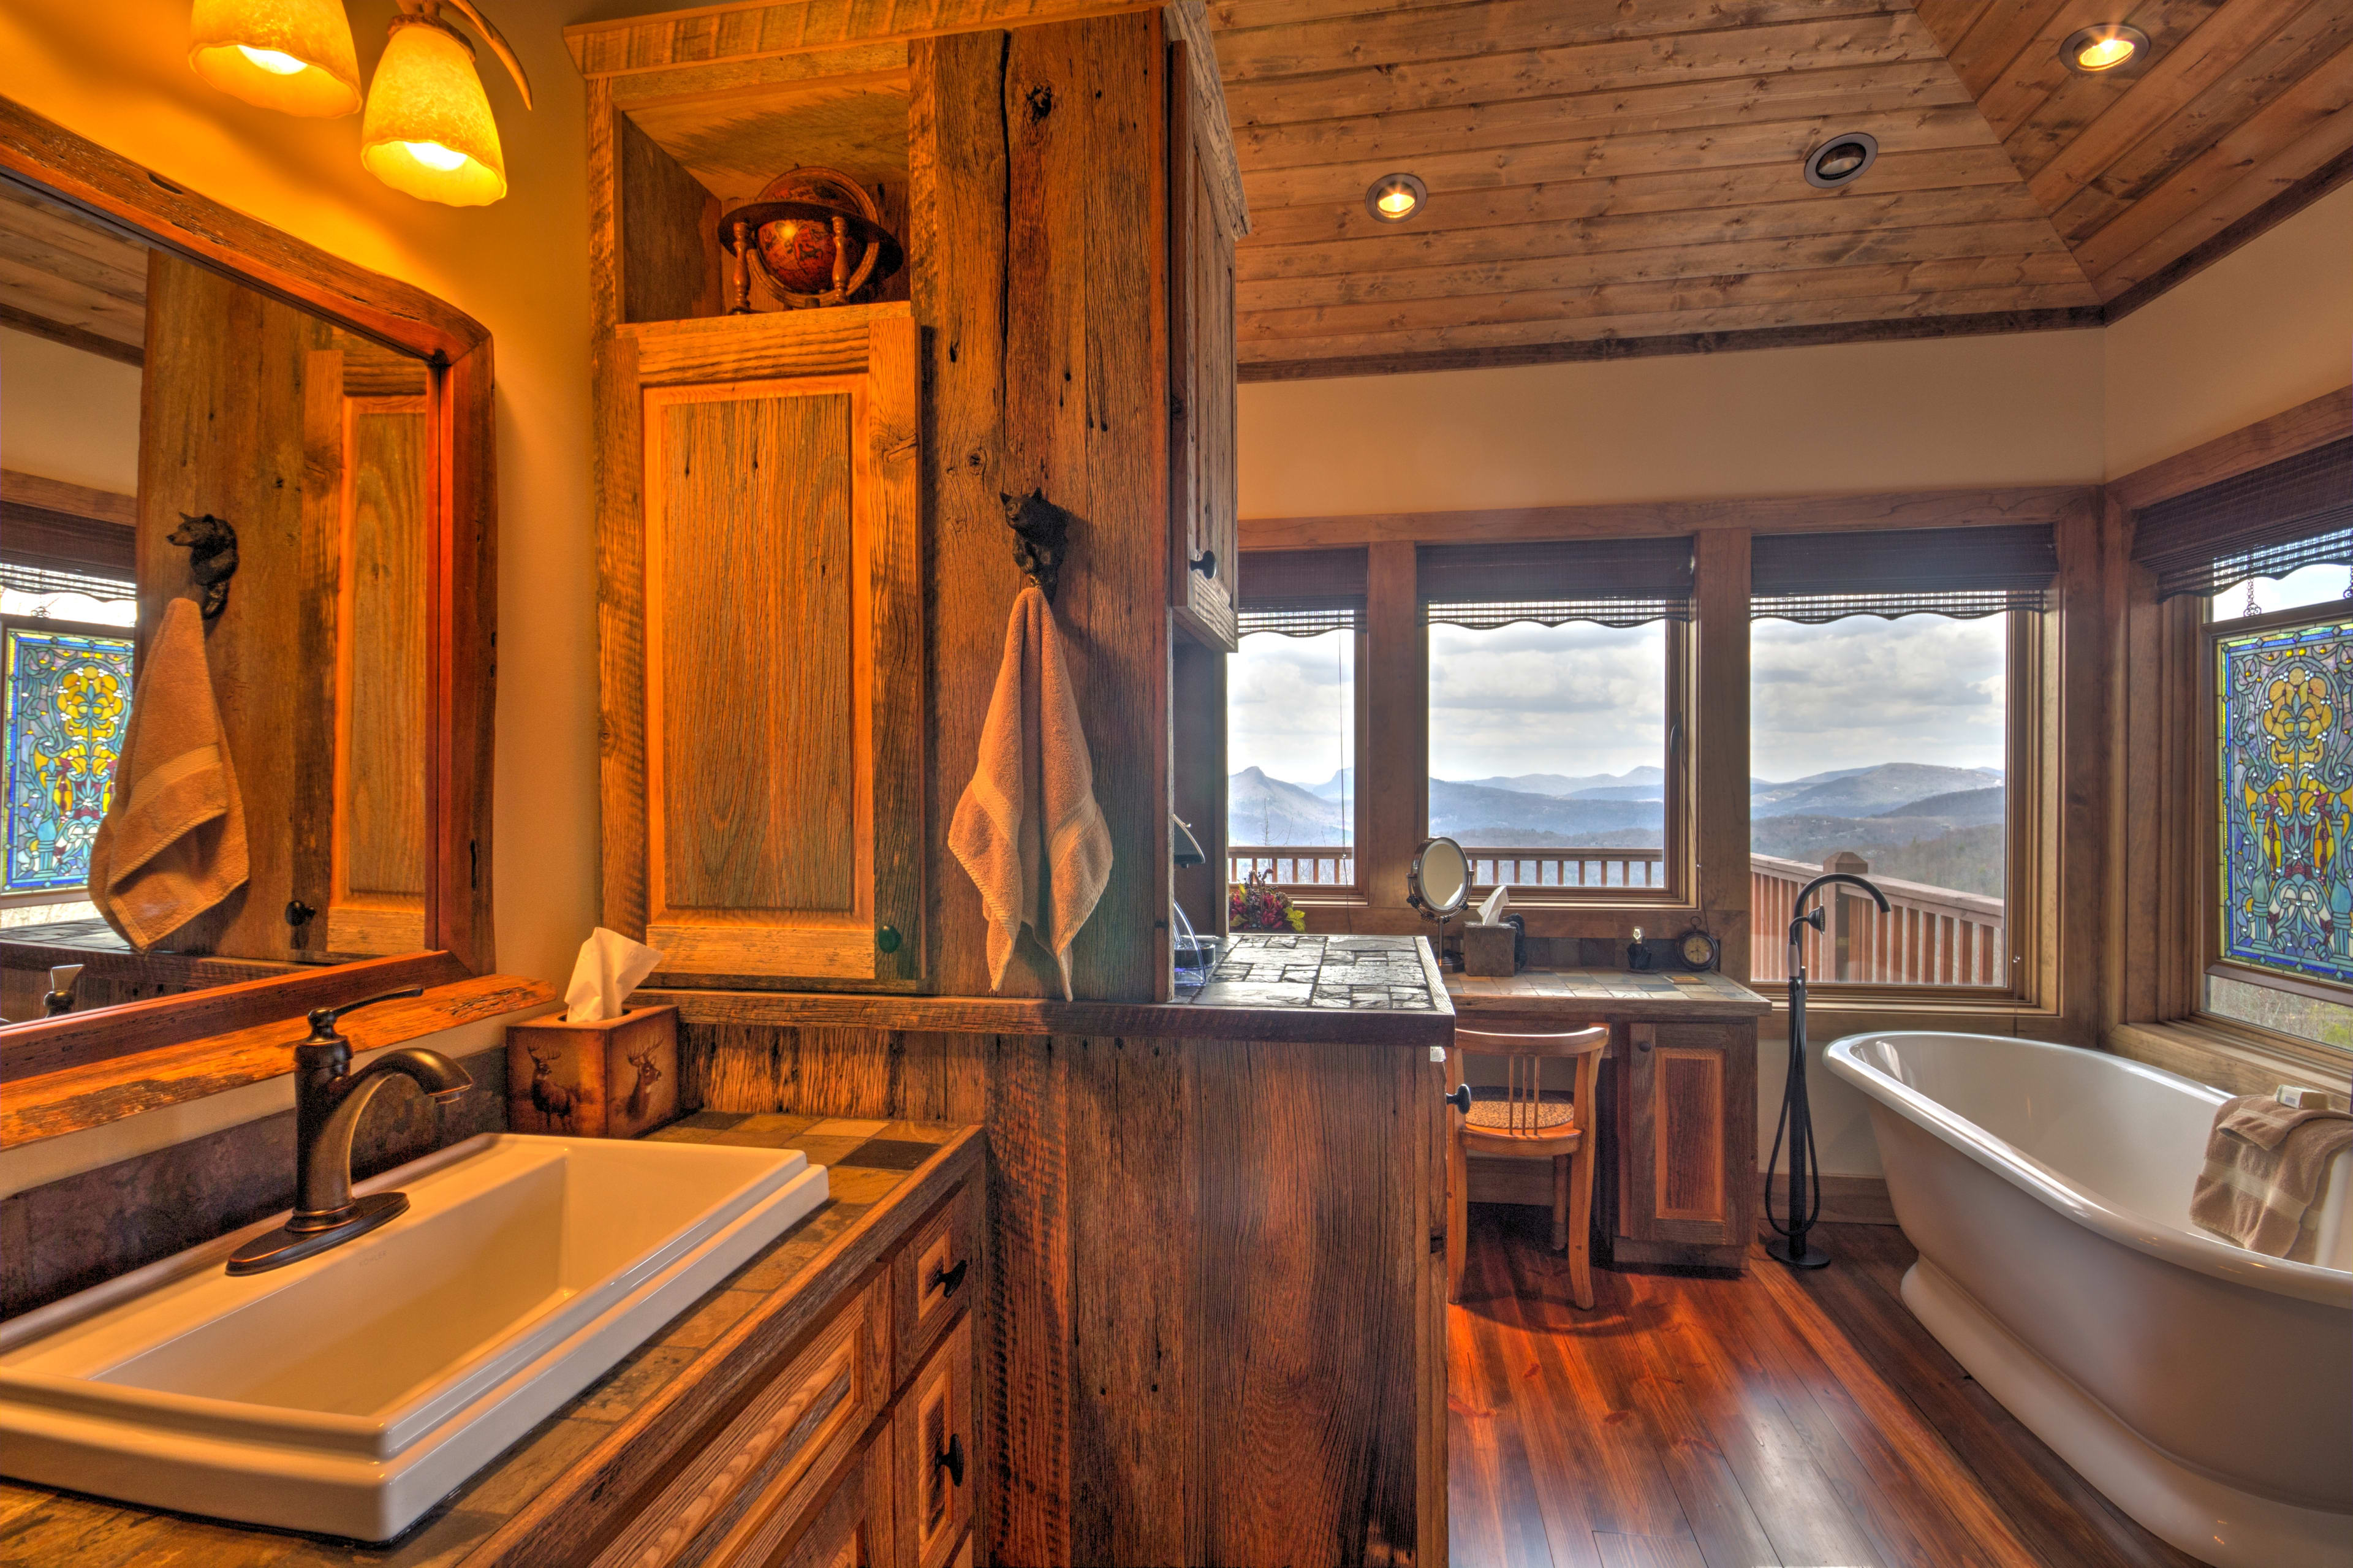 Enjoy  a soothing soak in the bathtub with moutnain vistas.